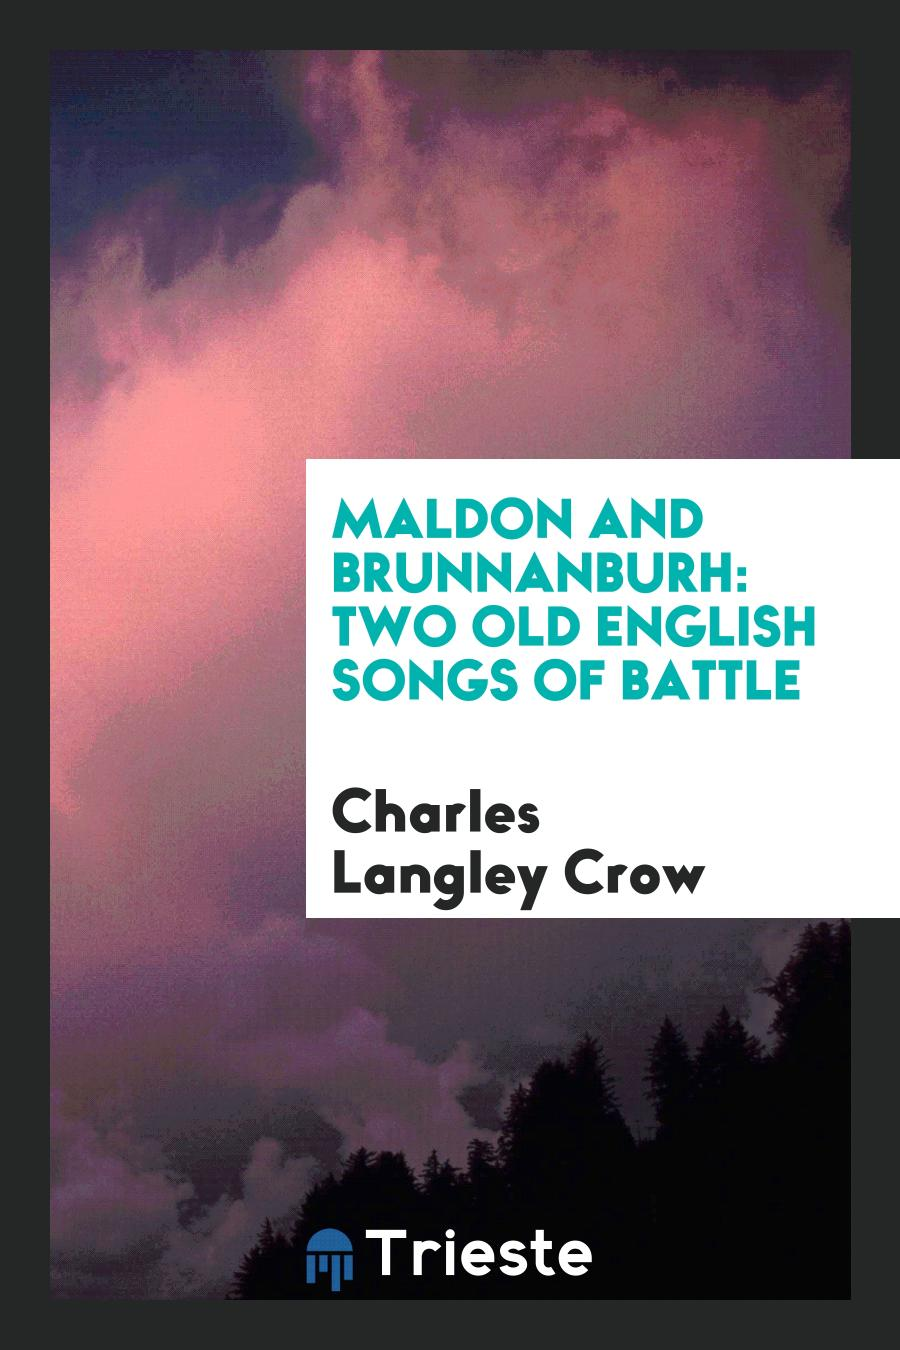 Maldon and Brunnanburh: Two Old English Songs of Battle